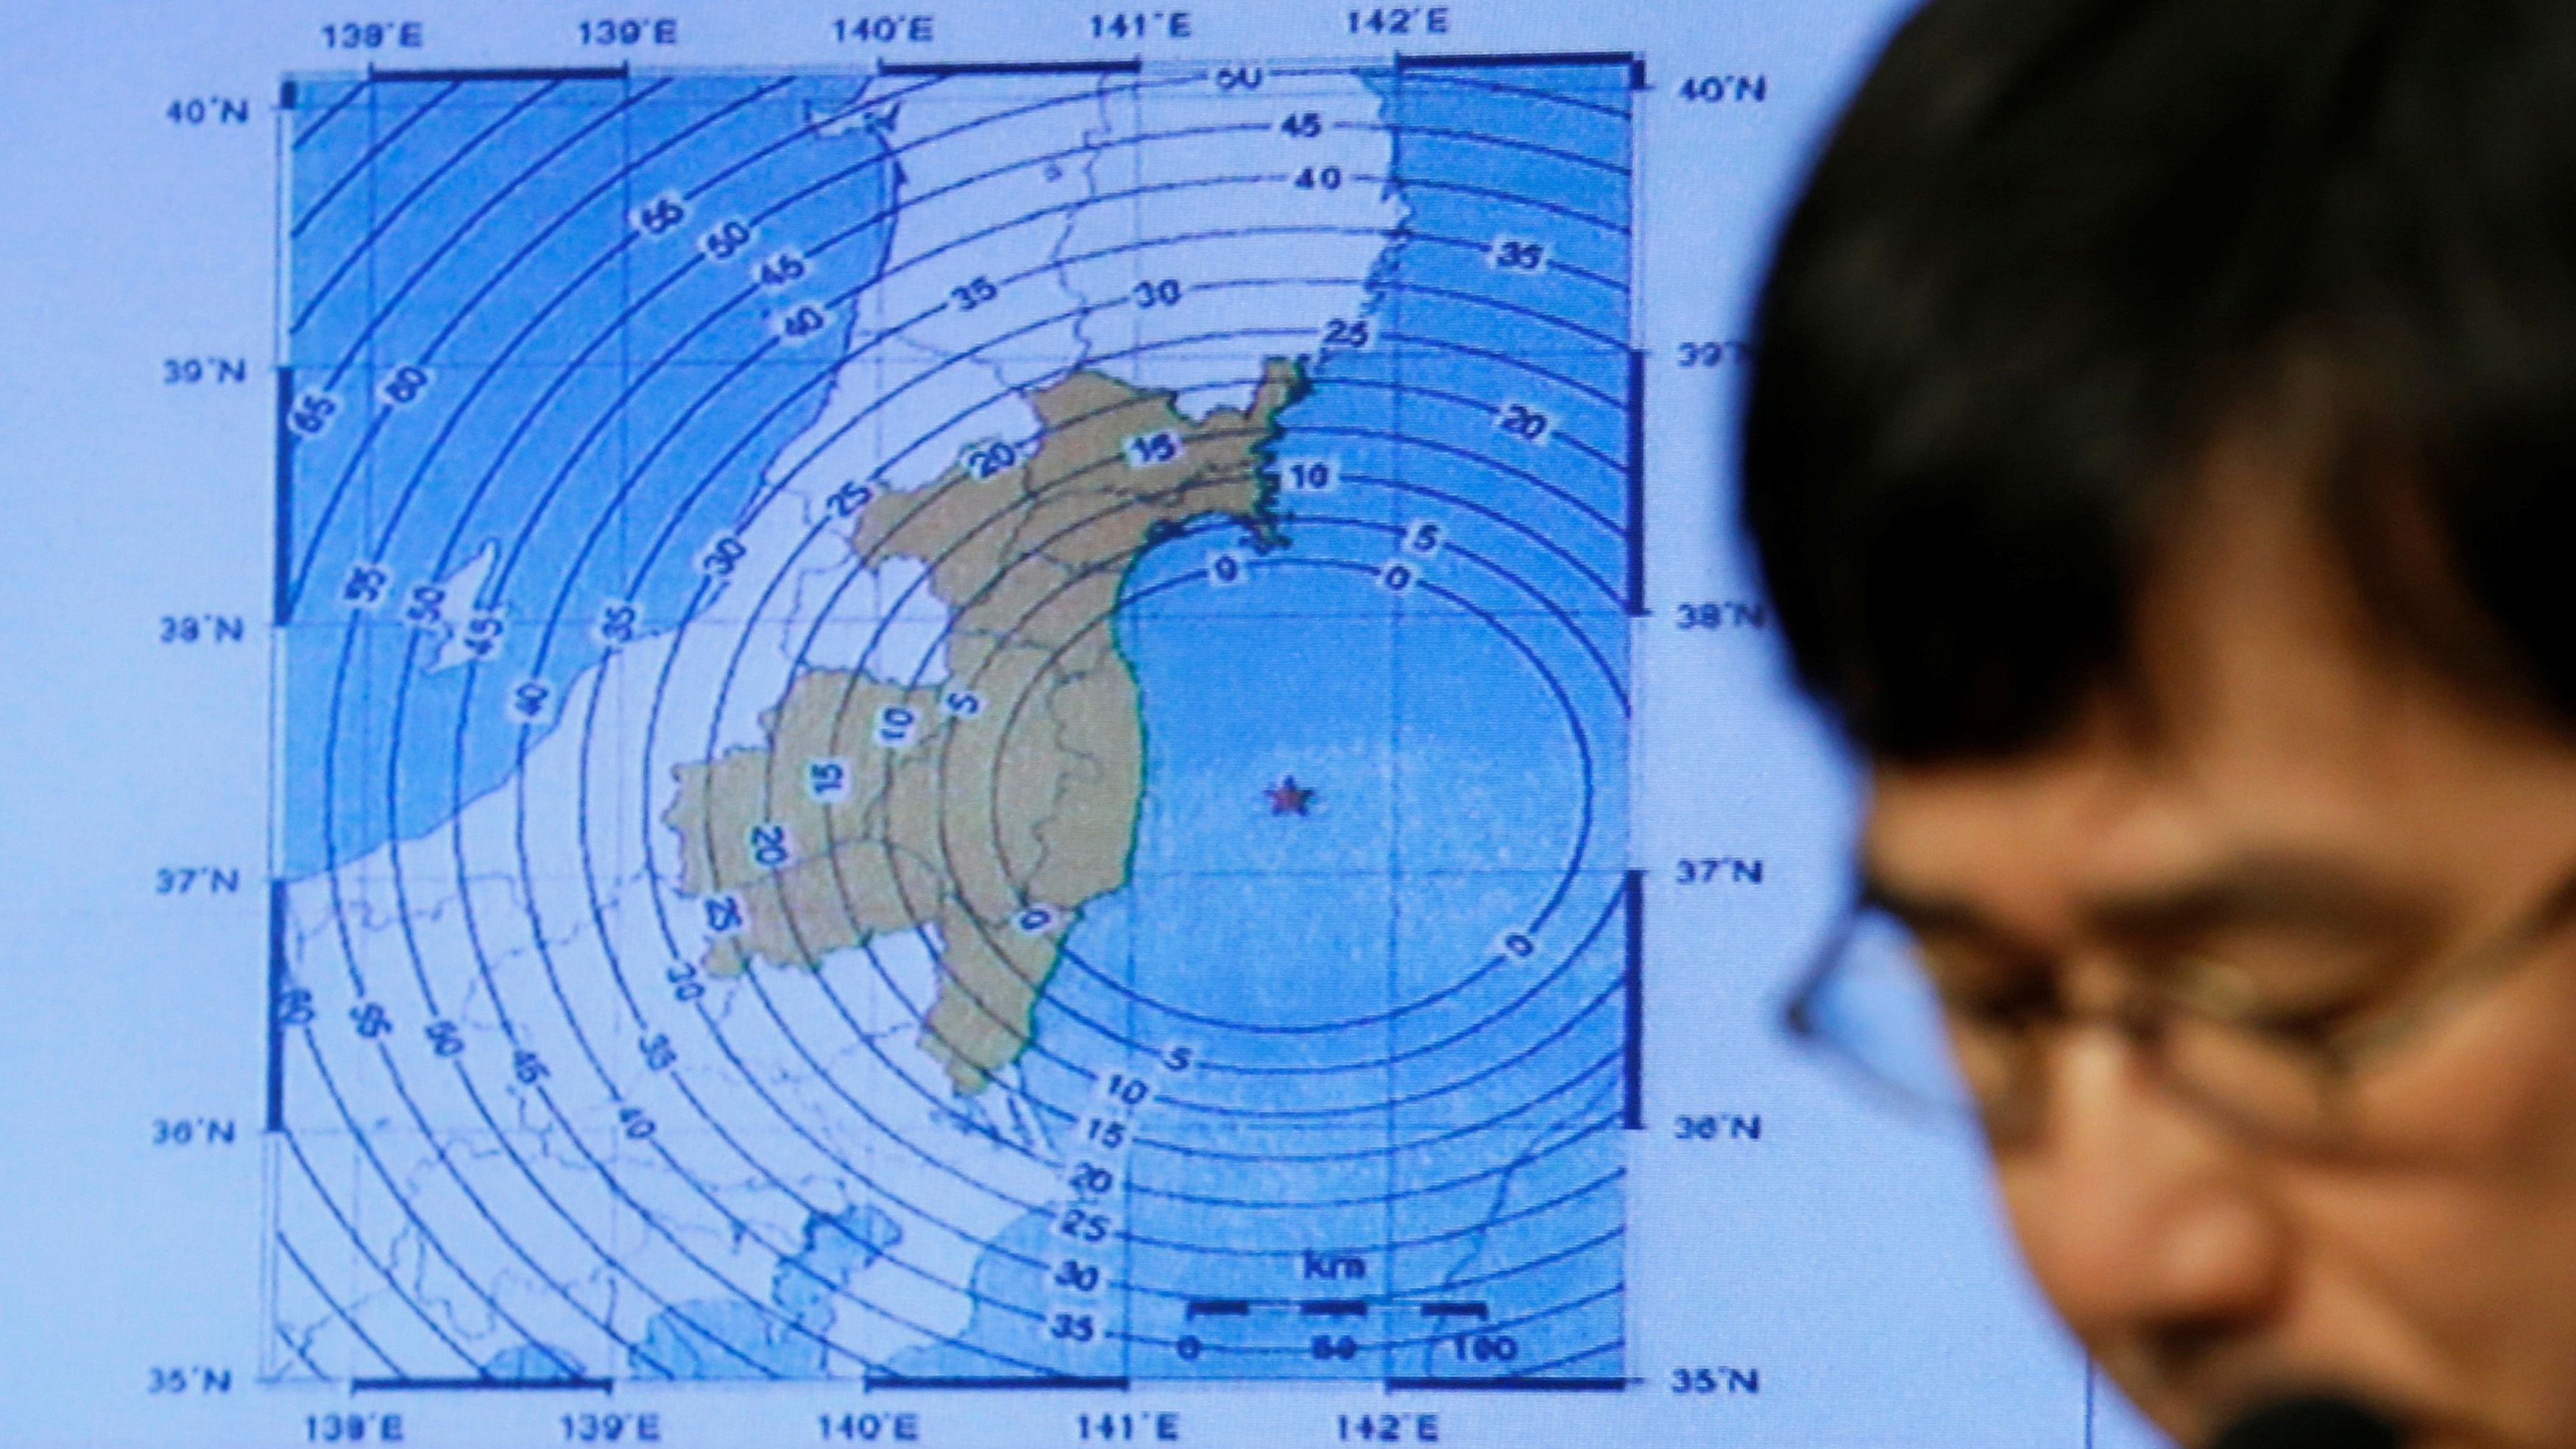 Japan Meteorological Agency's earthquake and volcano observations division director Koji Nakamura addresses a news conference next to the map showing an earthquake epicentre off the coast of Fukushima prefecture, in Tokyo, Japan November 22, 2016. Reuters/Toru Hanai - RTSSPPY